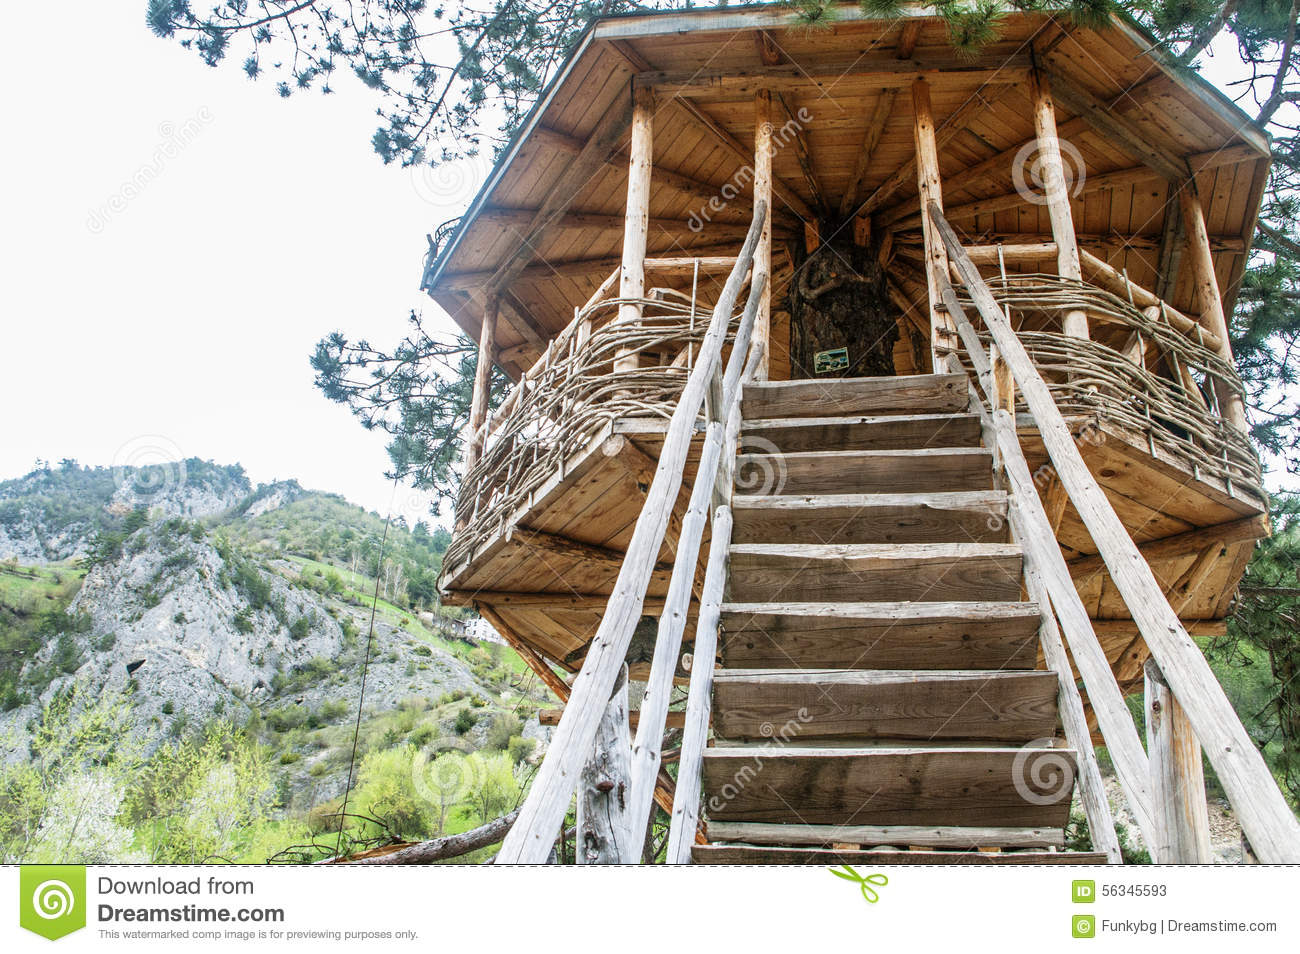 Groovy Cute Small Tree House Stock Illustration Image 56345593 Largest Home Design Picture Inspirations Pitcheantrous